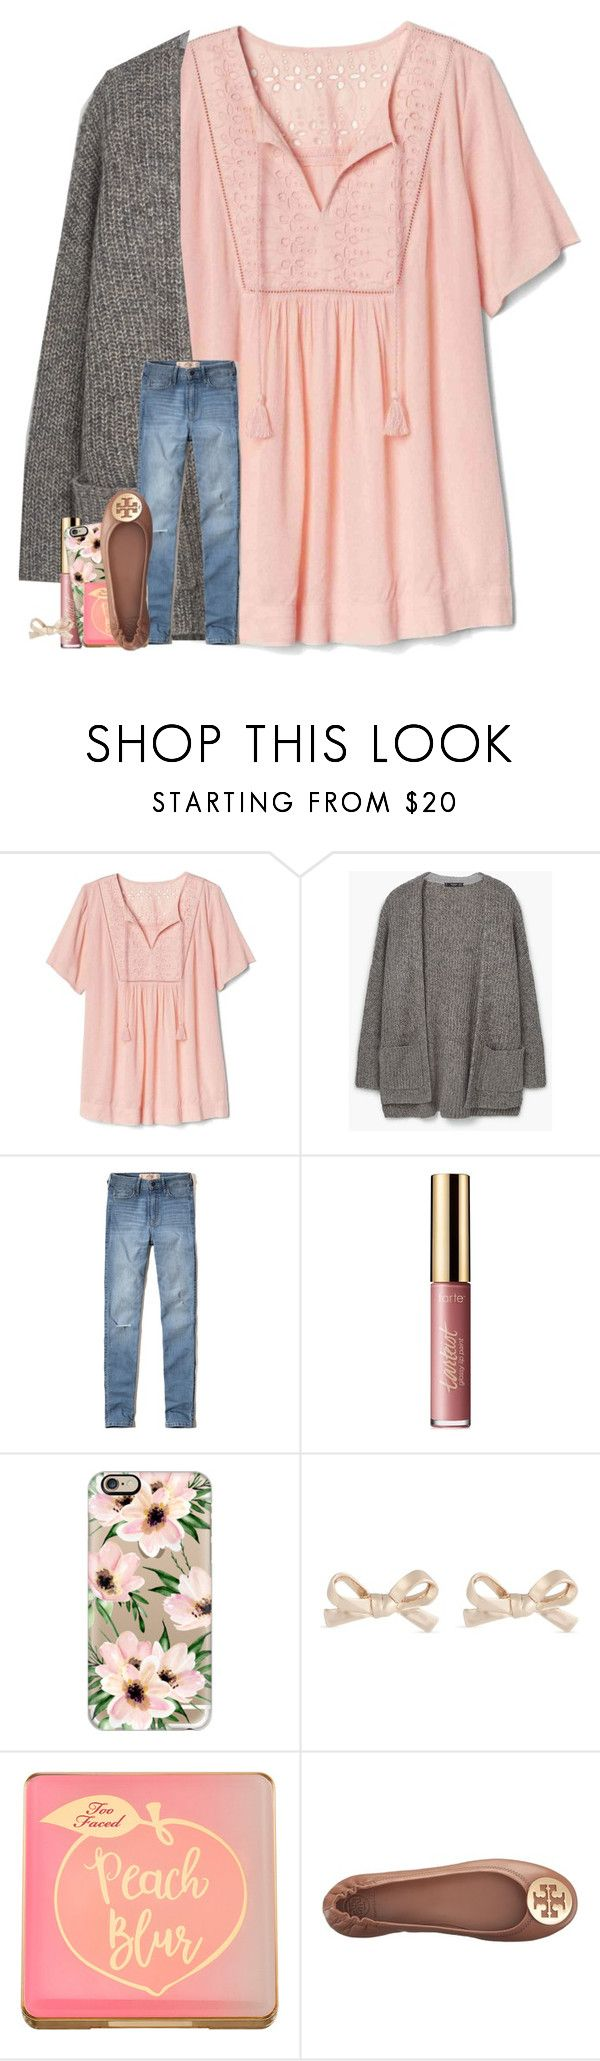 """trunk-or-treat at church tonight :)"" by madelinelurene ❤ liked on Polyvore featuring Gap, MANGO, Hollister Co., tarte, Casetify, Kate Spade, Too Faced Cosmetics and Tory Burch"